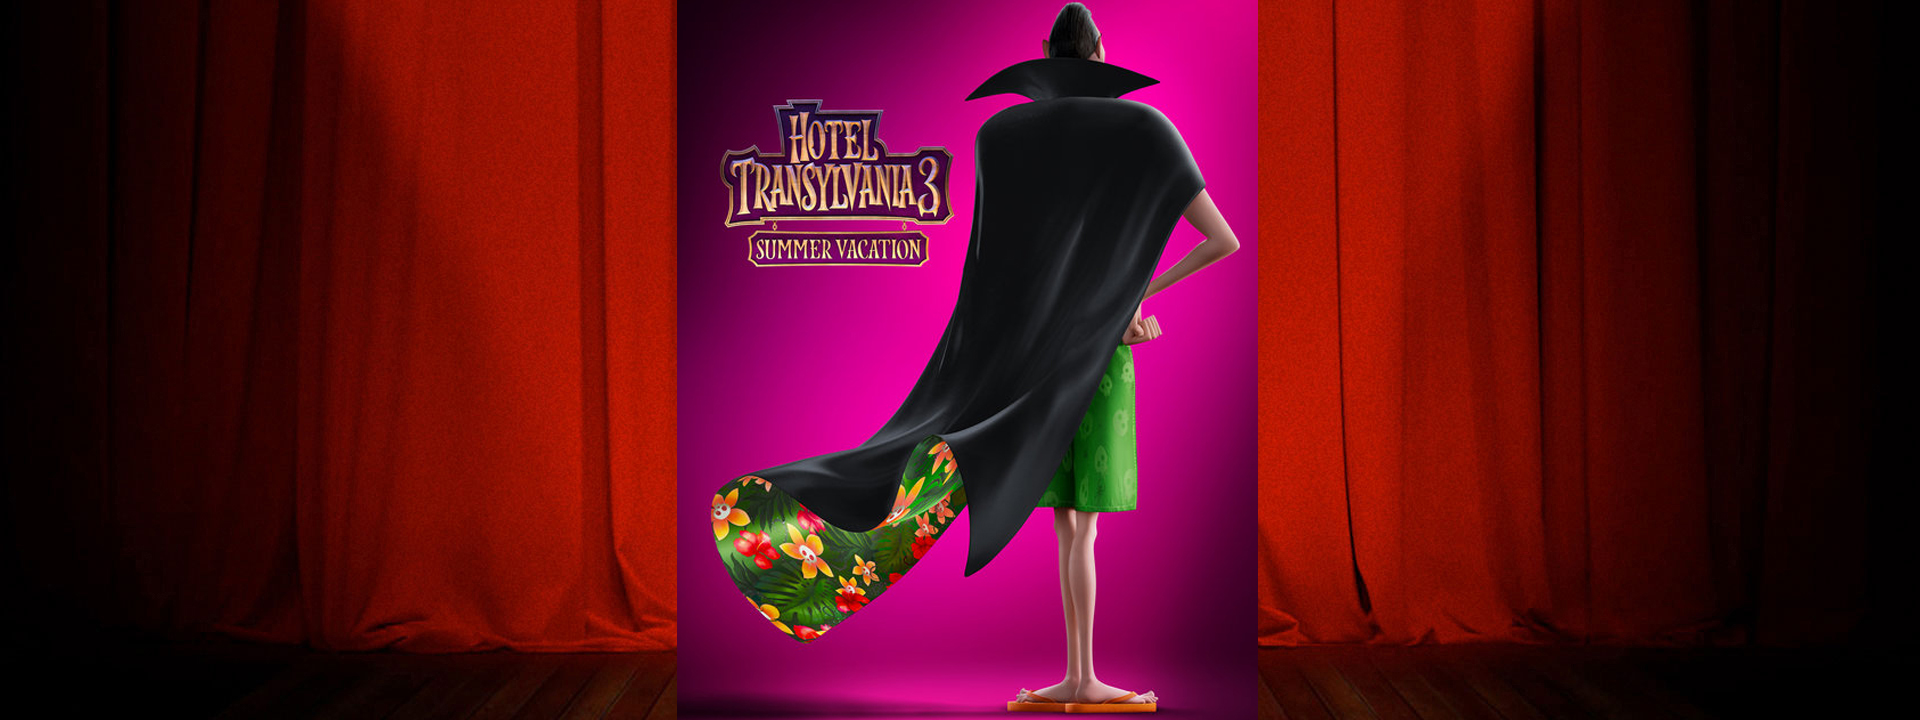 Hotel Transylvania 3 - Now Playing